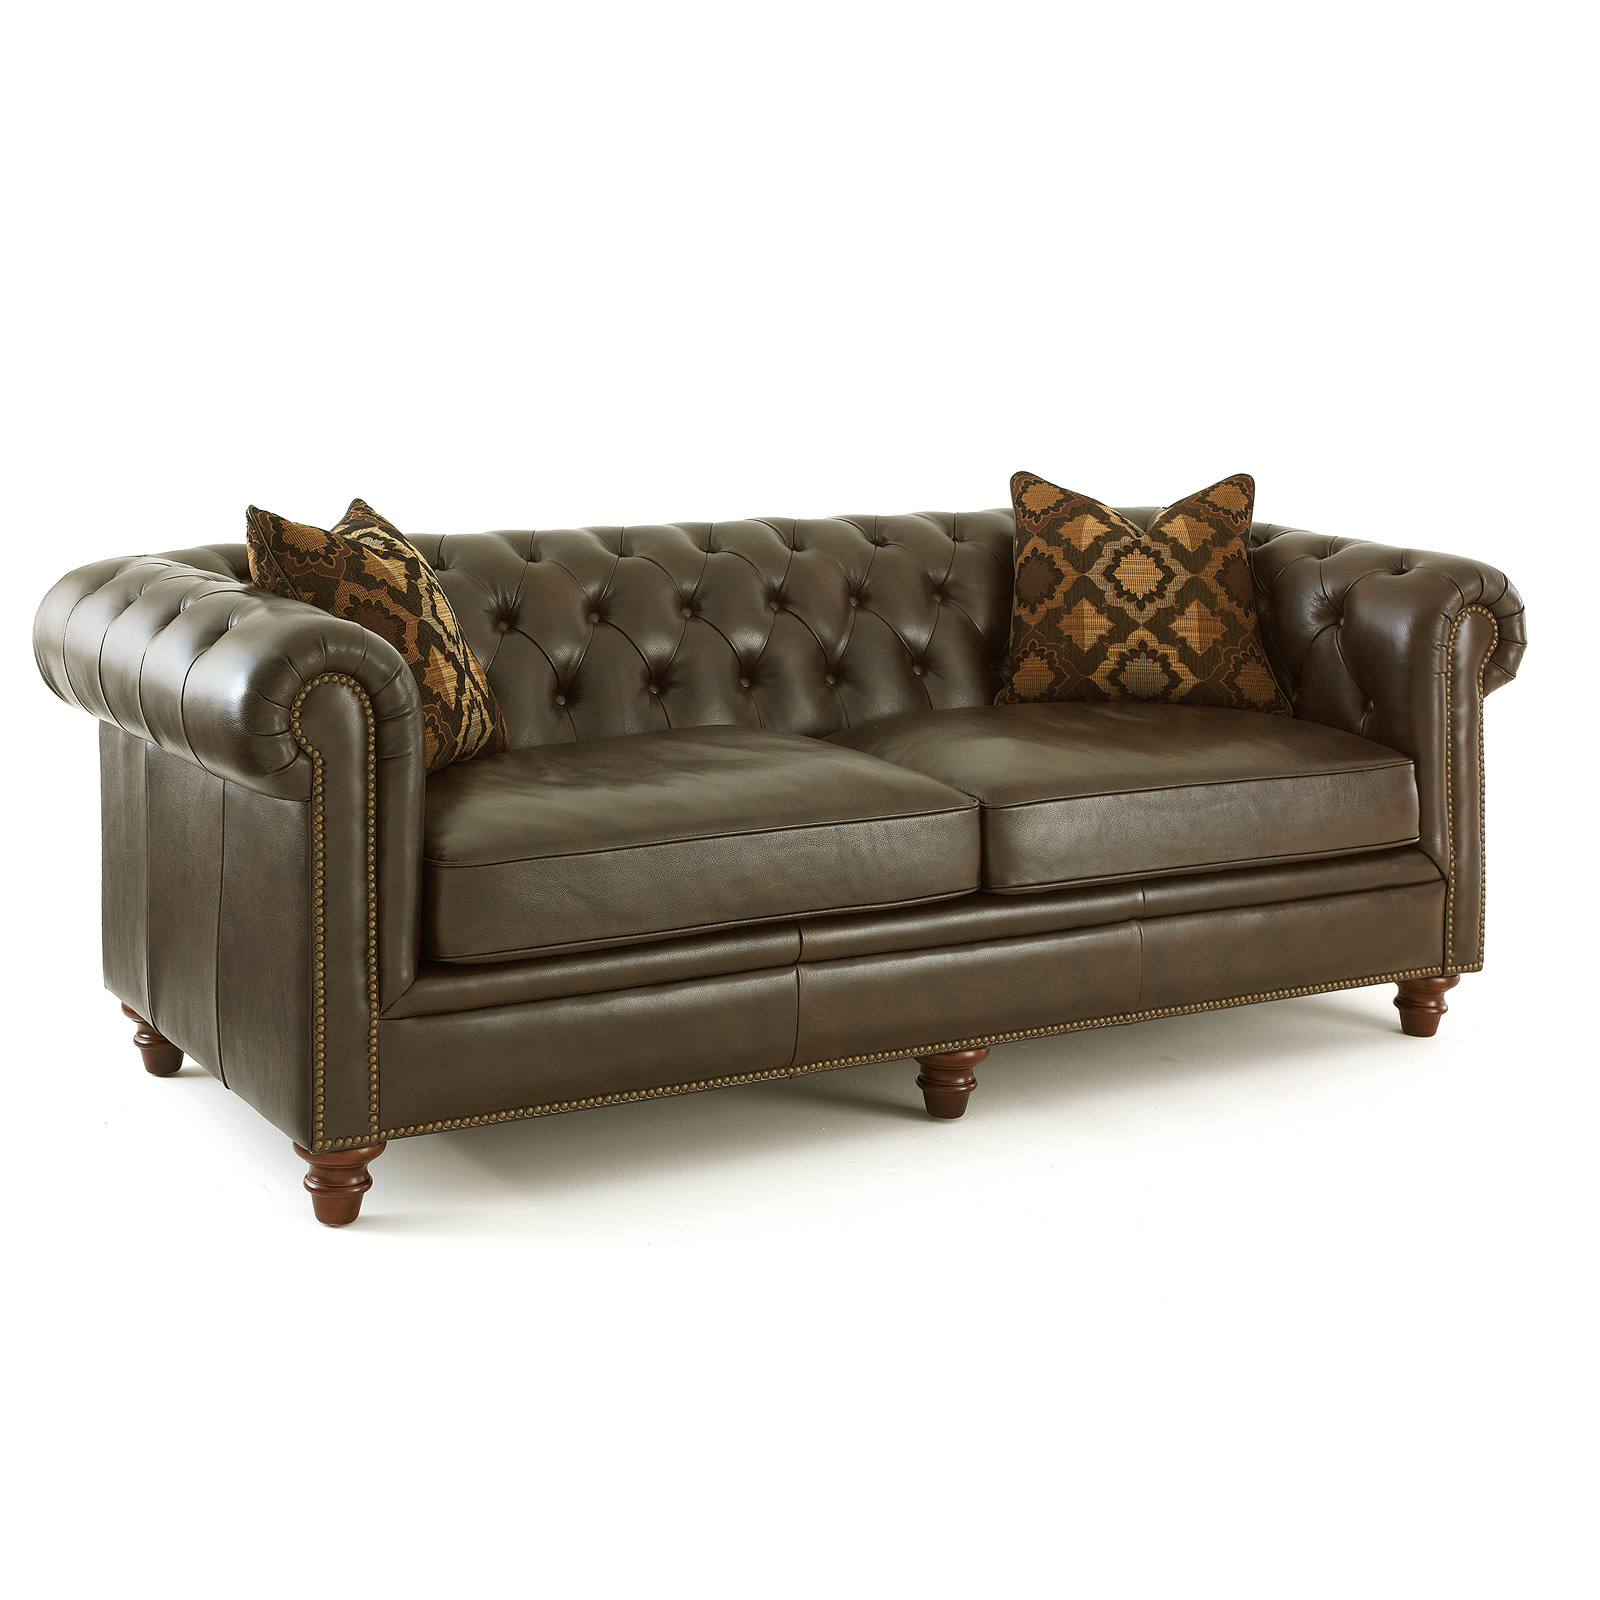 Leather Sofa For Accent Pillows: Steve Silver Tusconny Leather Sofa With 2 Accent Pillows